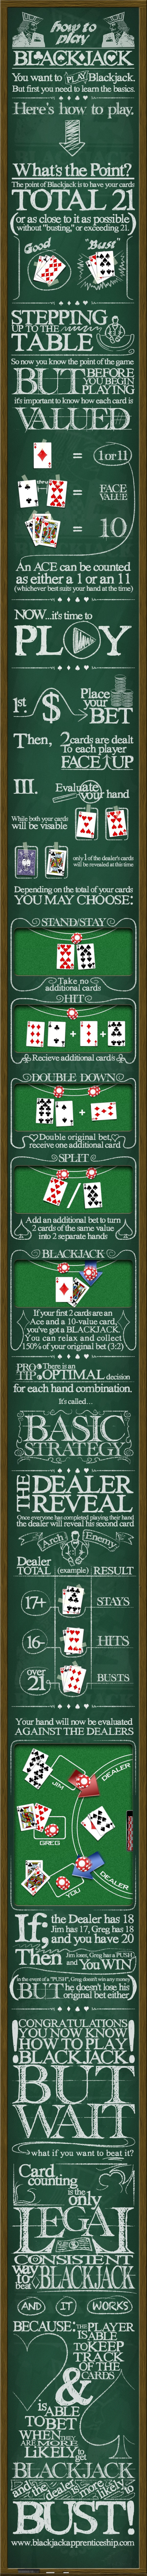 How to play and win Black Jack